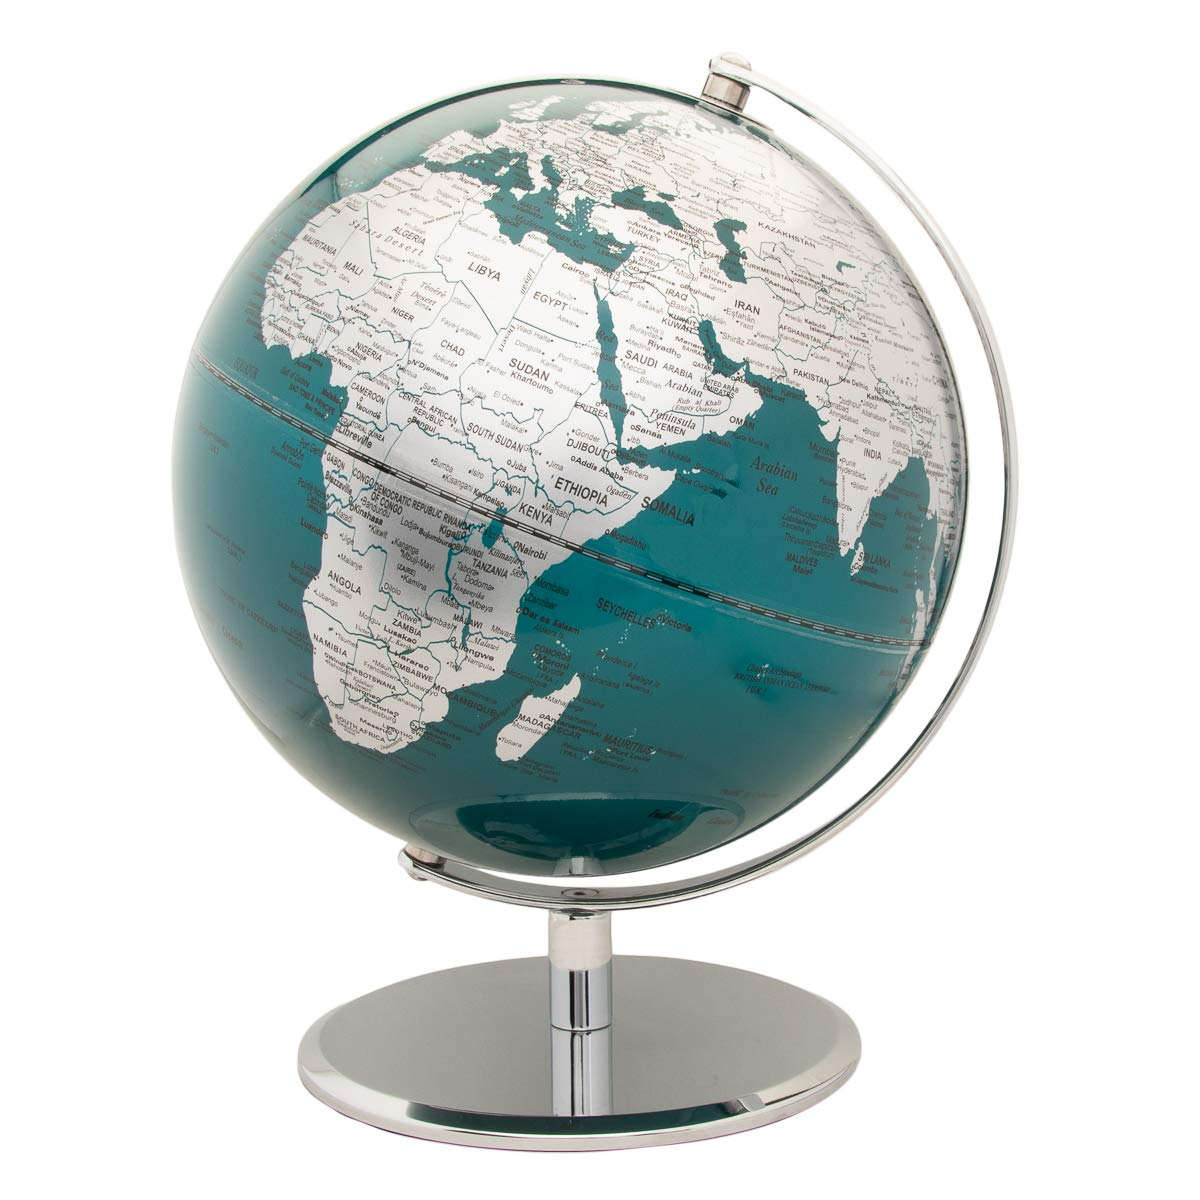 Wild and Wolf 10'' World Globe For Kids, Globe For Adults, School Supplies, Classroom Supplies, Home Decor, Office Desk Accessories